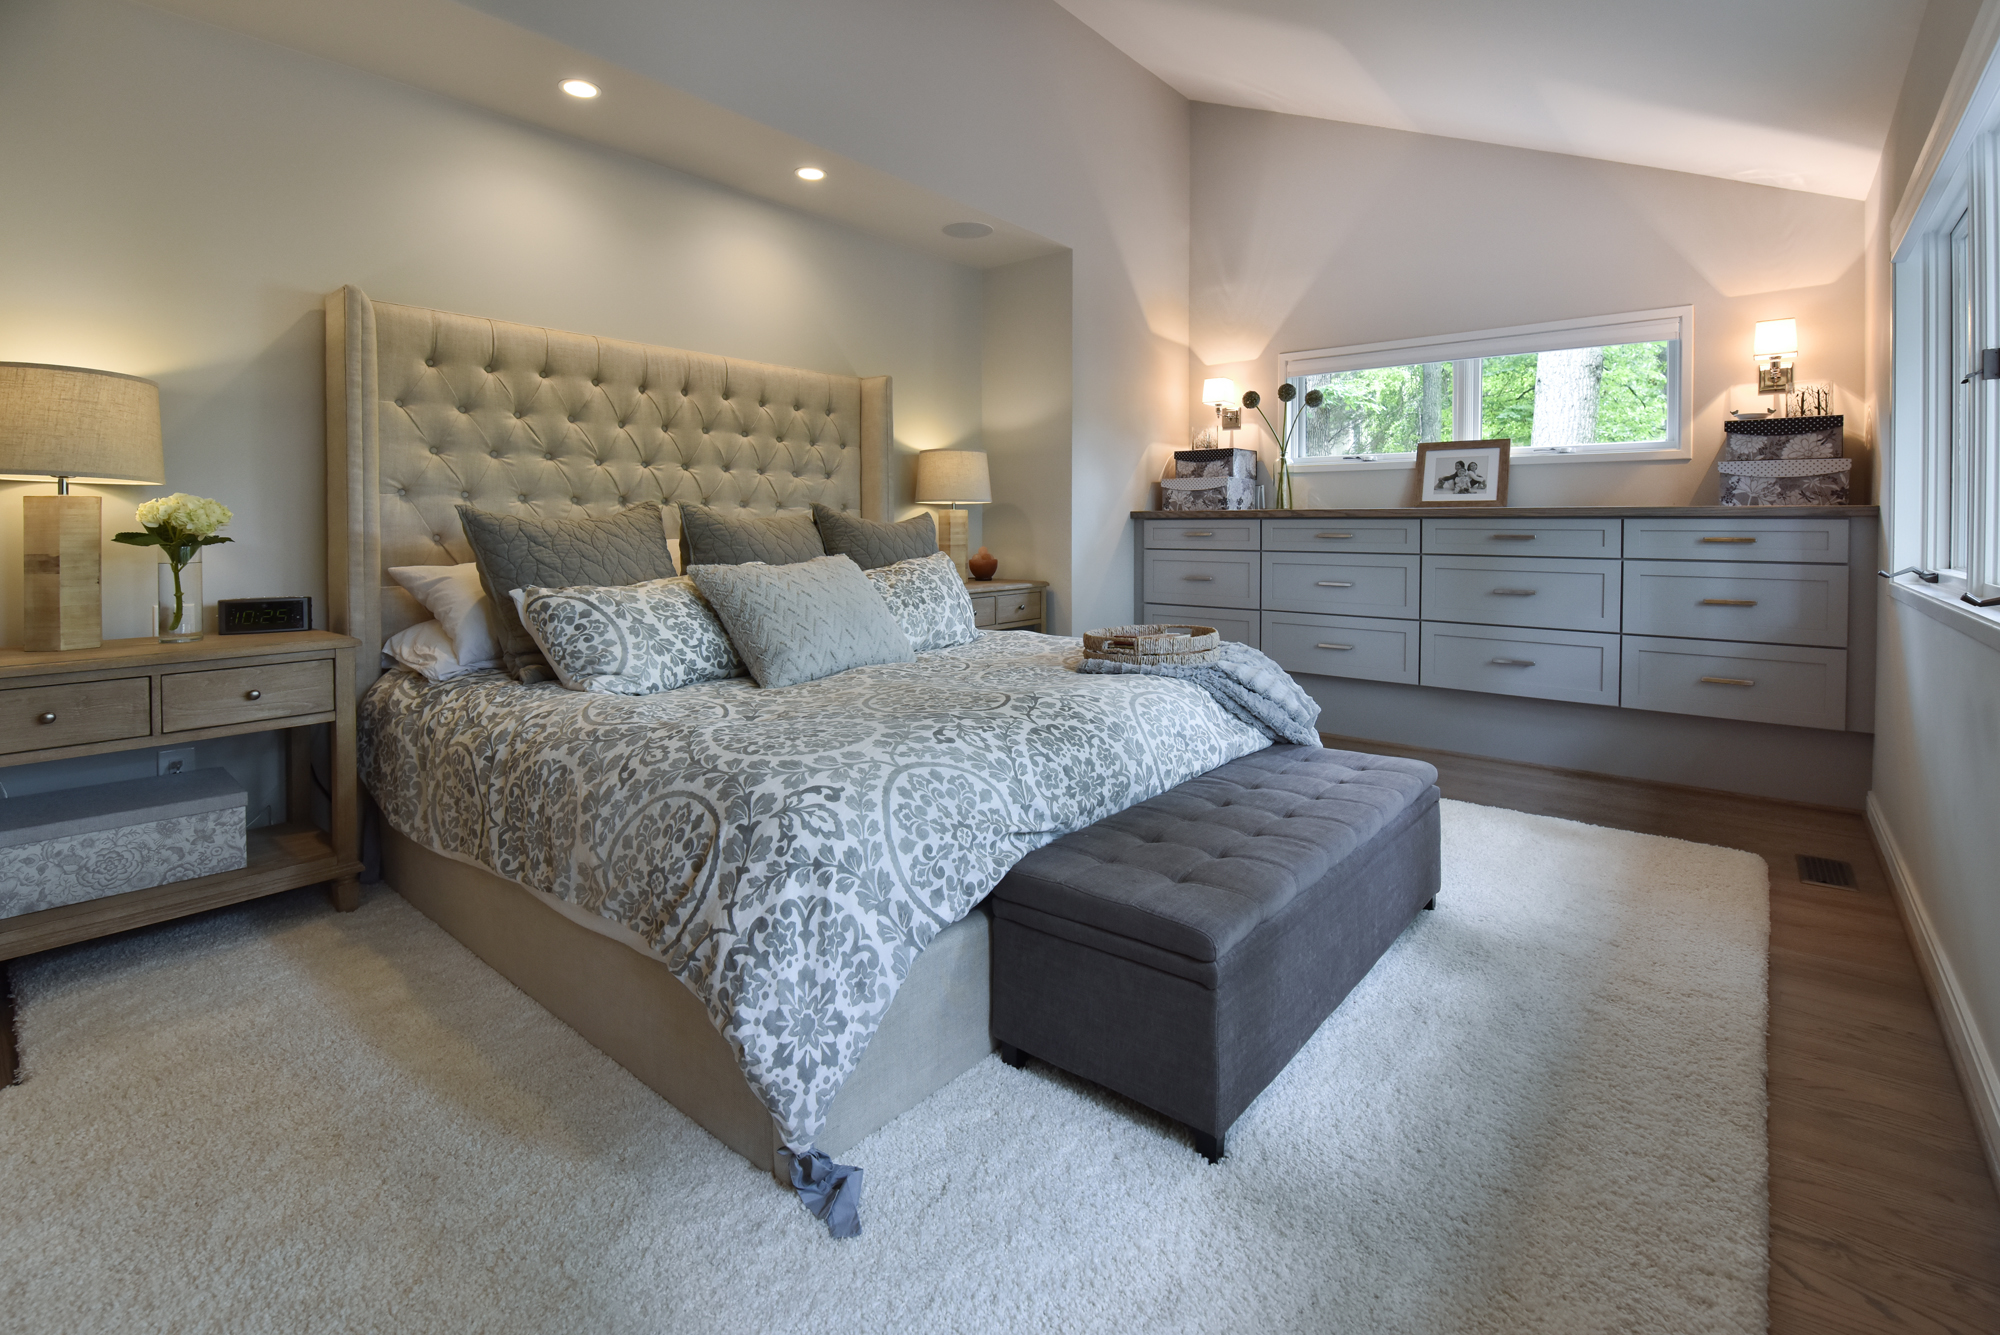 Owners Suites Bedrooms Photos Gallery Bowa Design Build Renovations